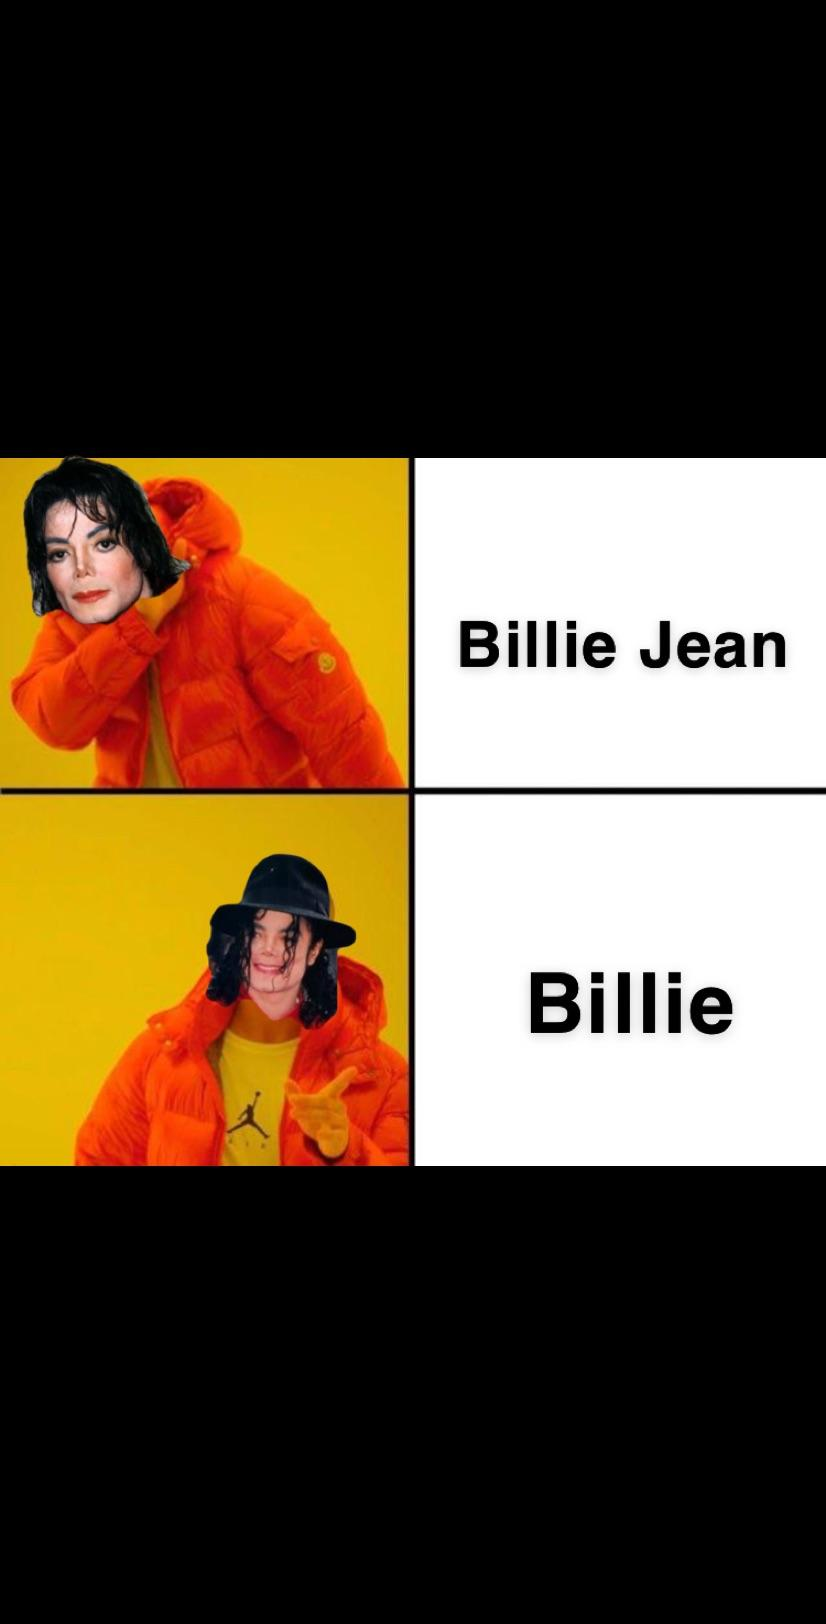 Turn On Car Stereo Billie Jean Is Just Starting Success Kid